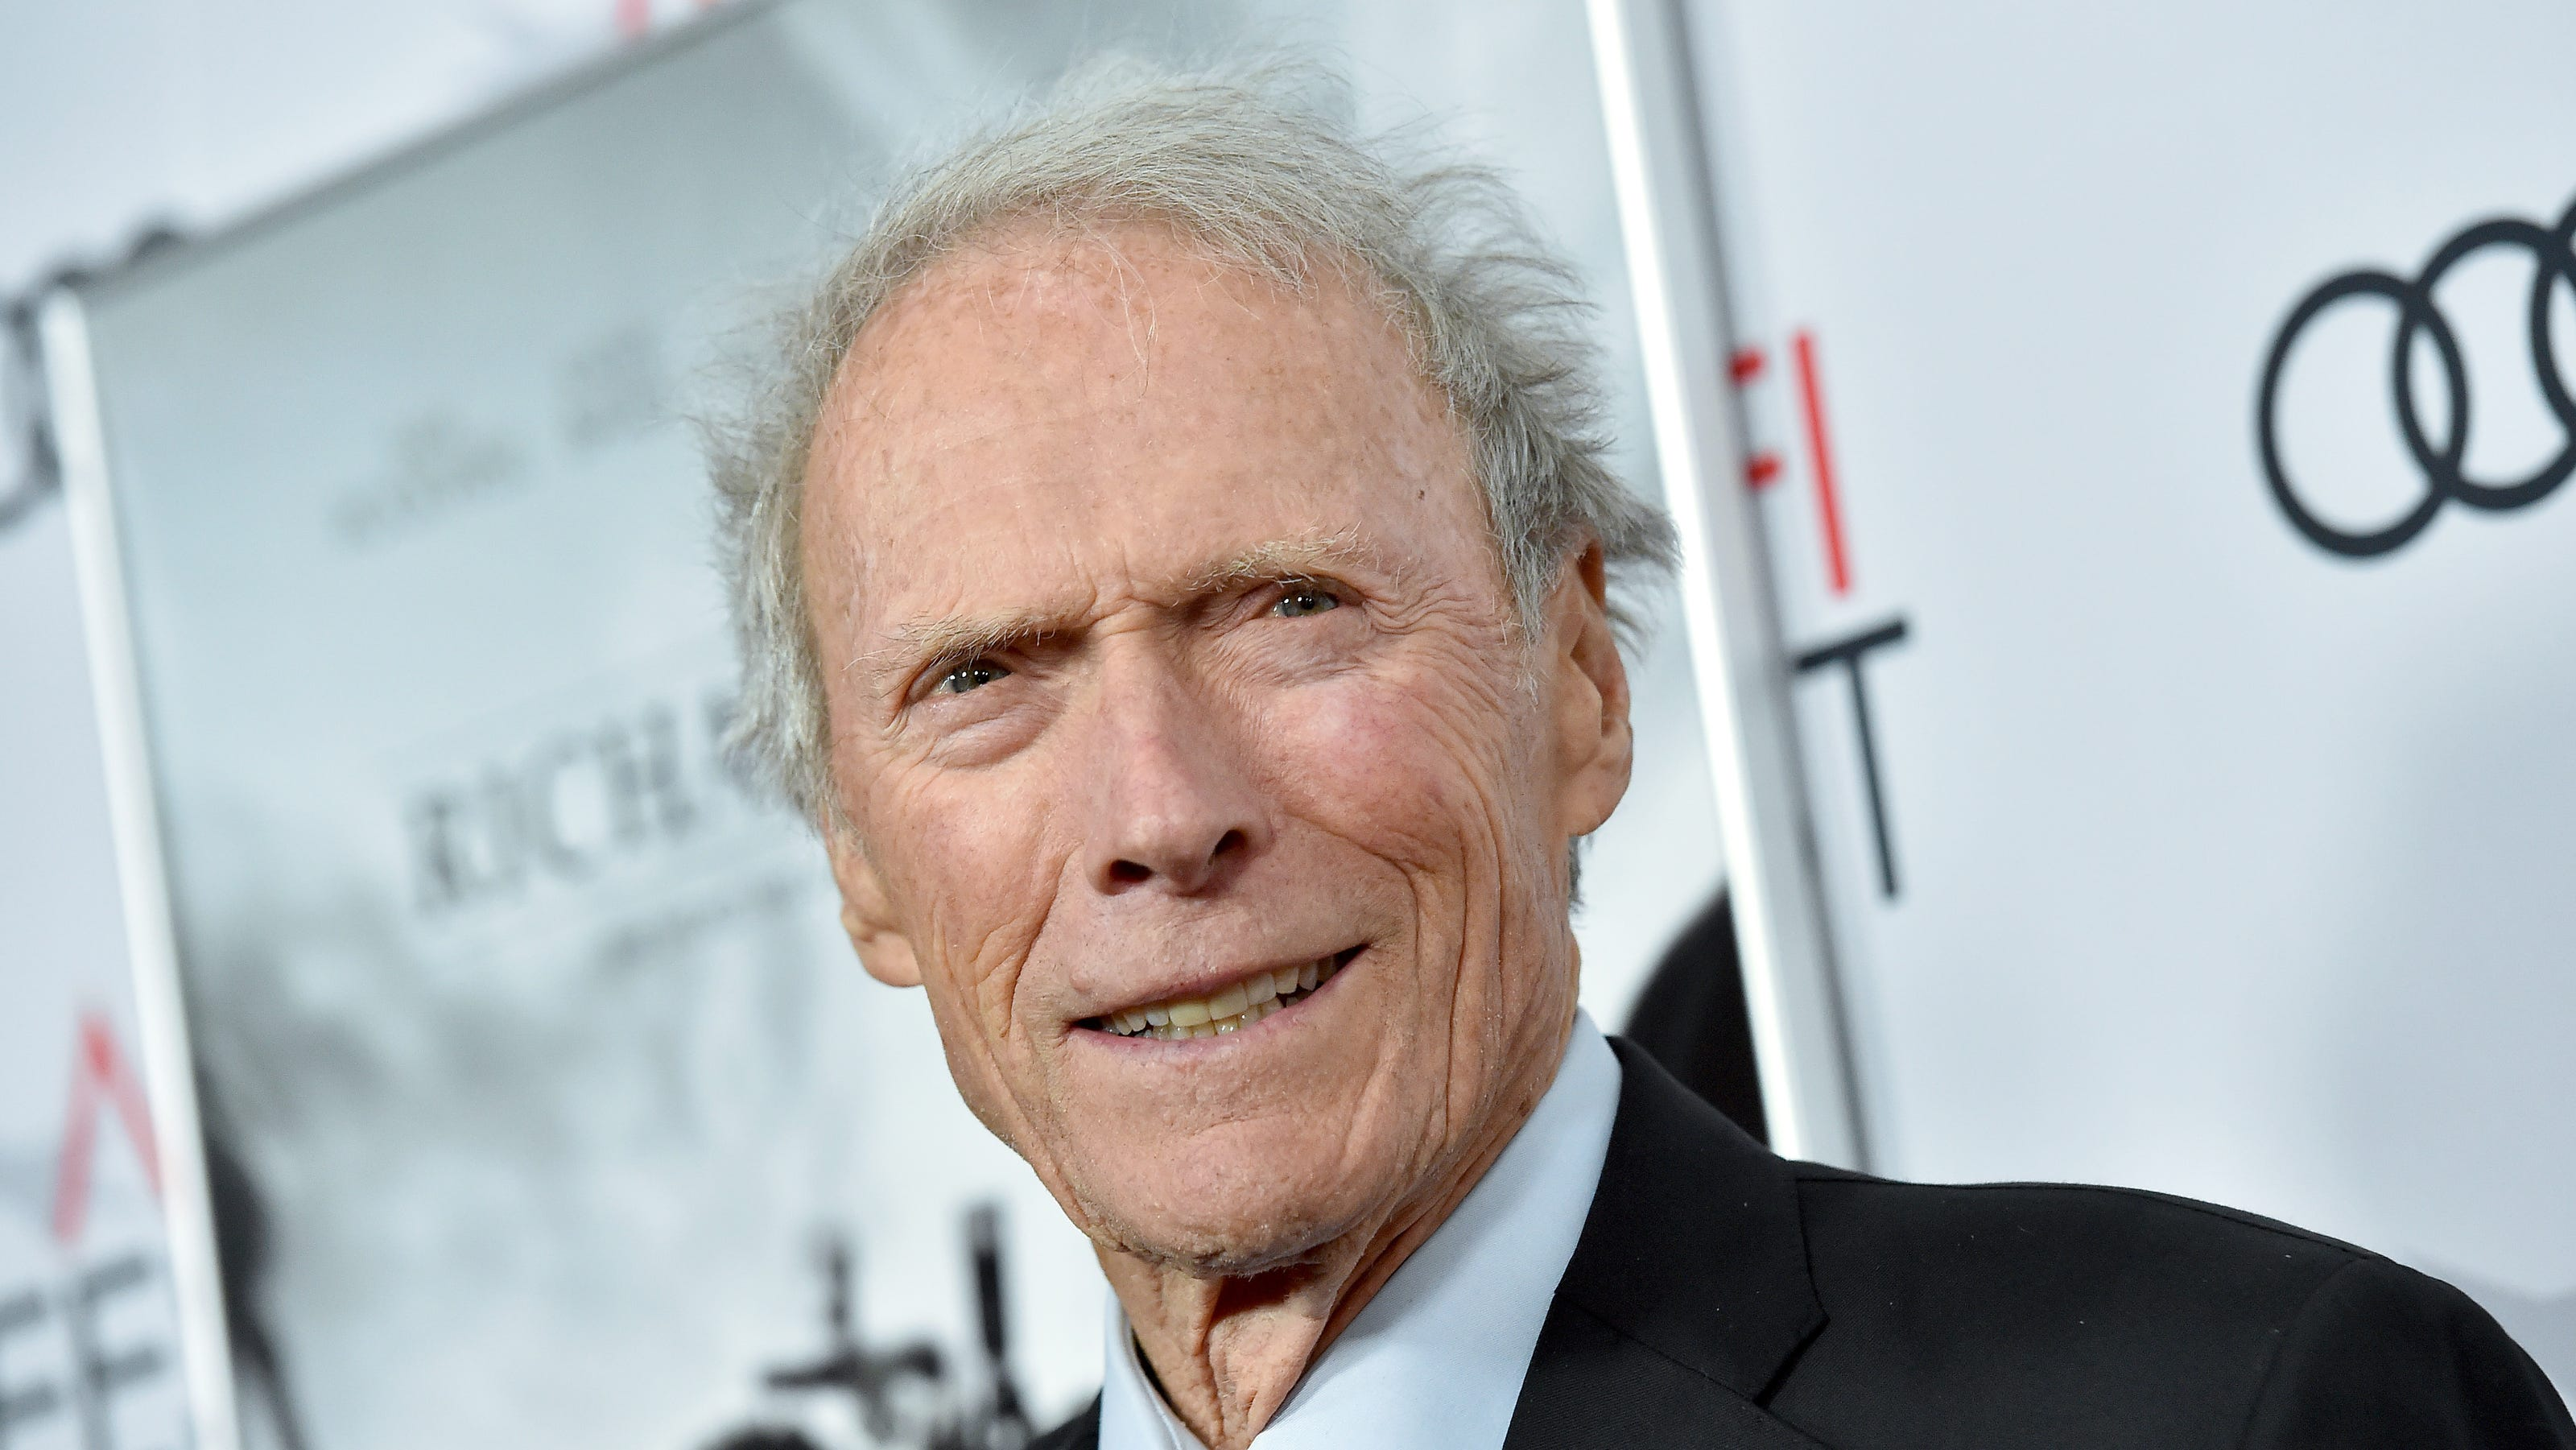 The Complete Clint Eastwood Collection